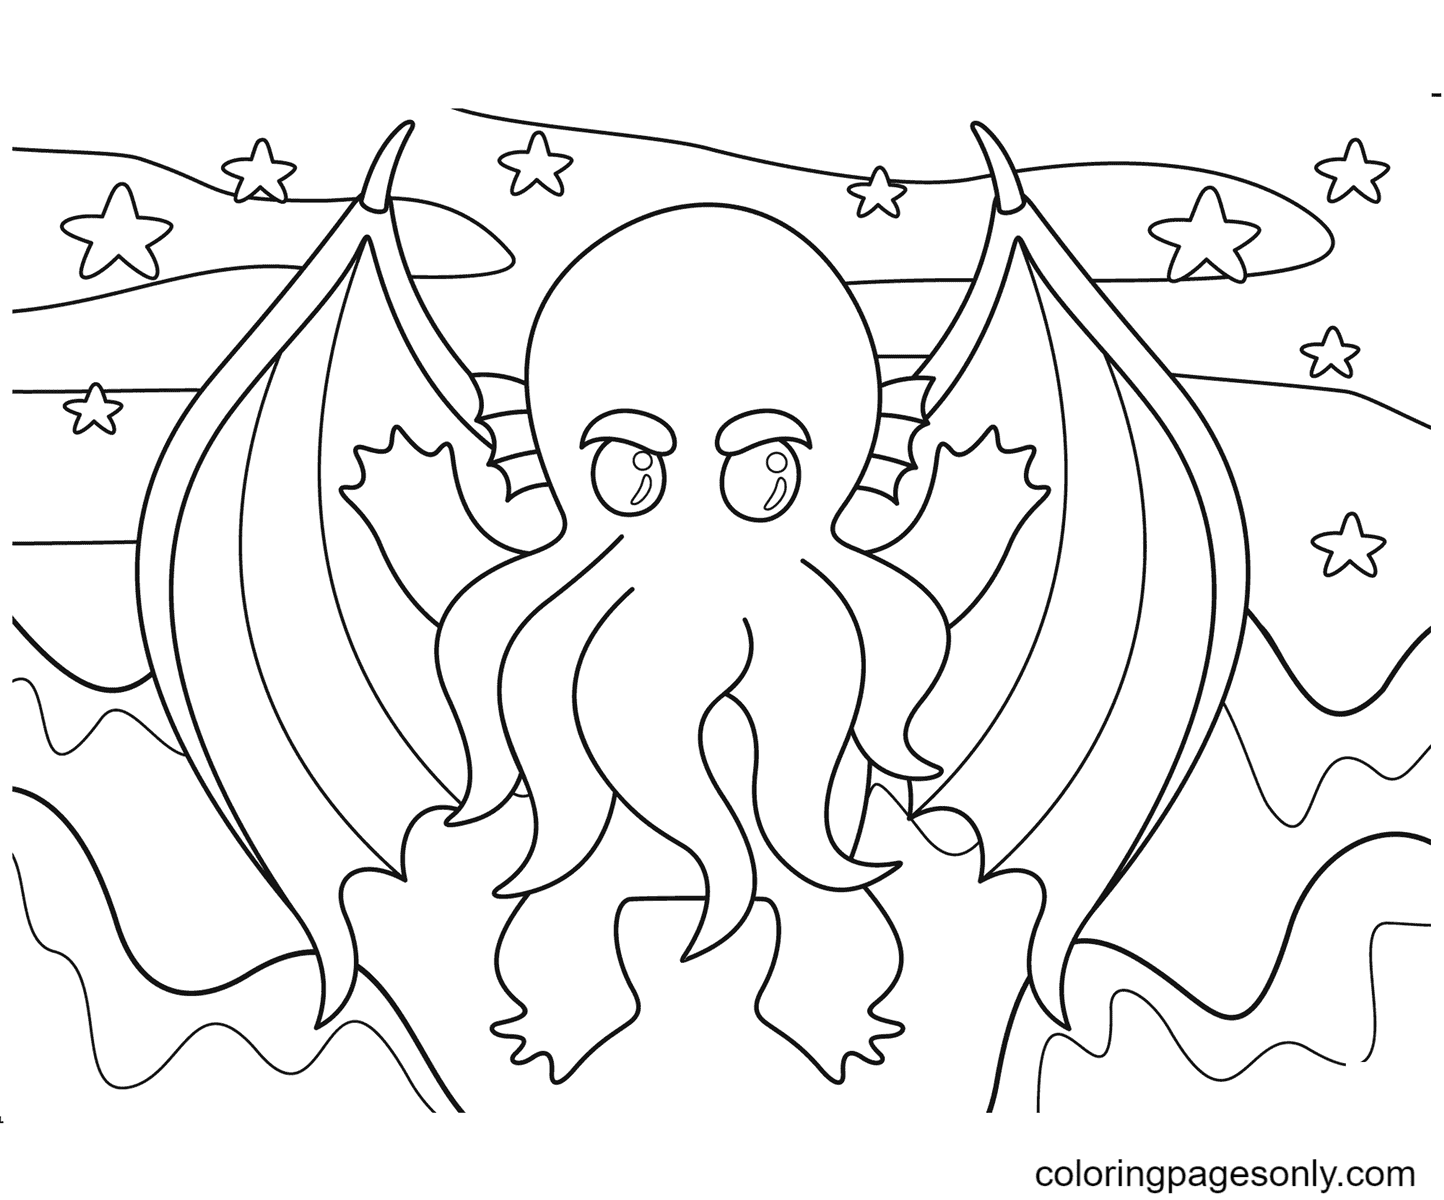 Halloween Cthulhu Coloring Page